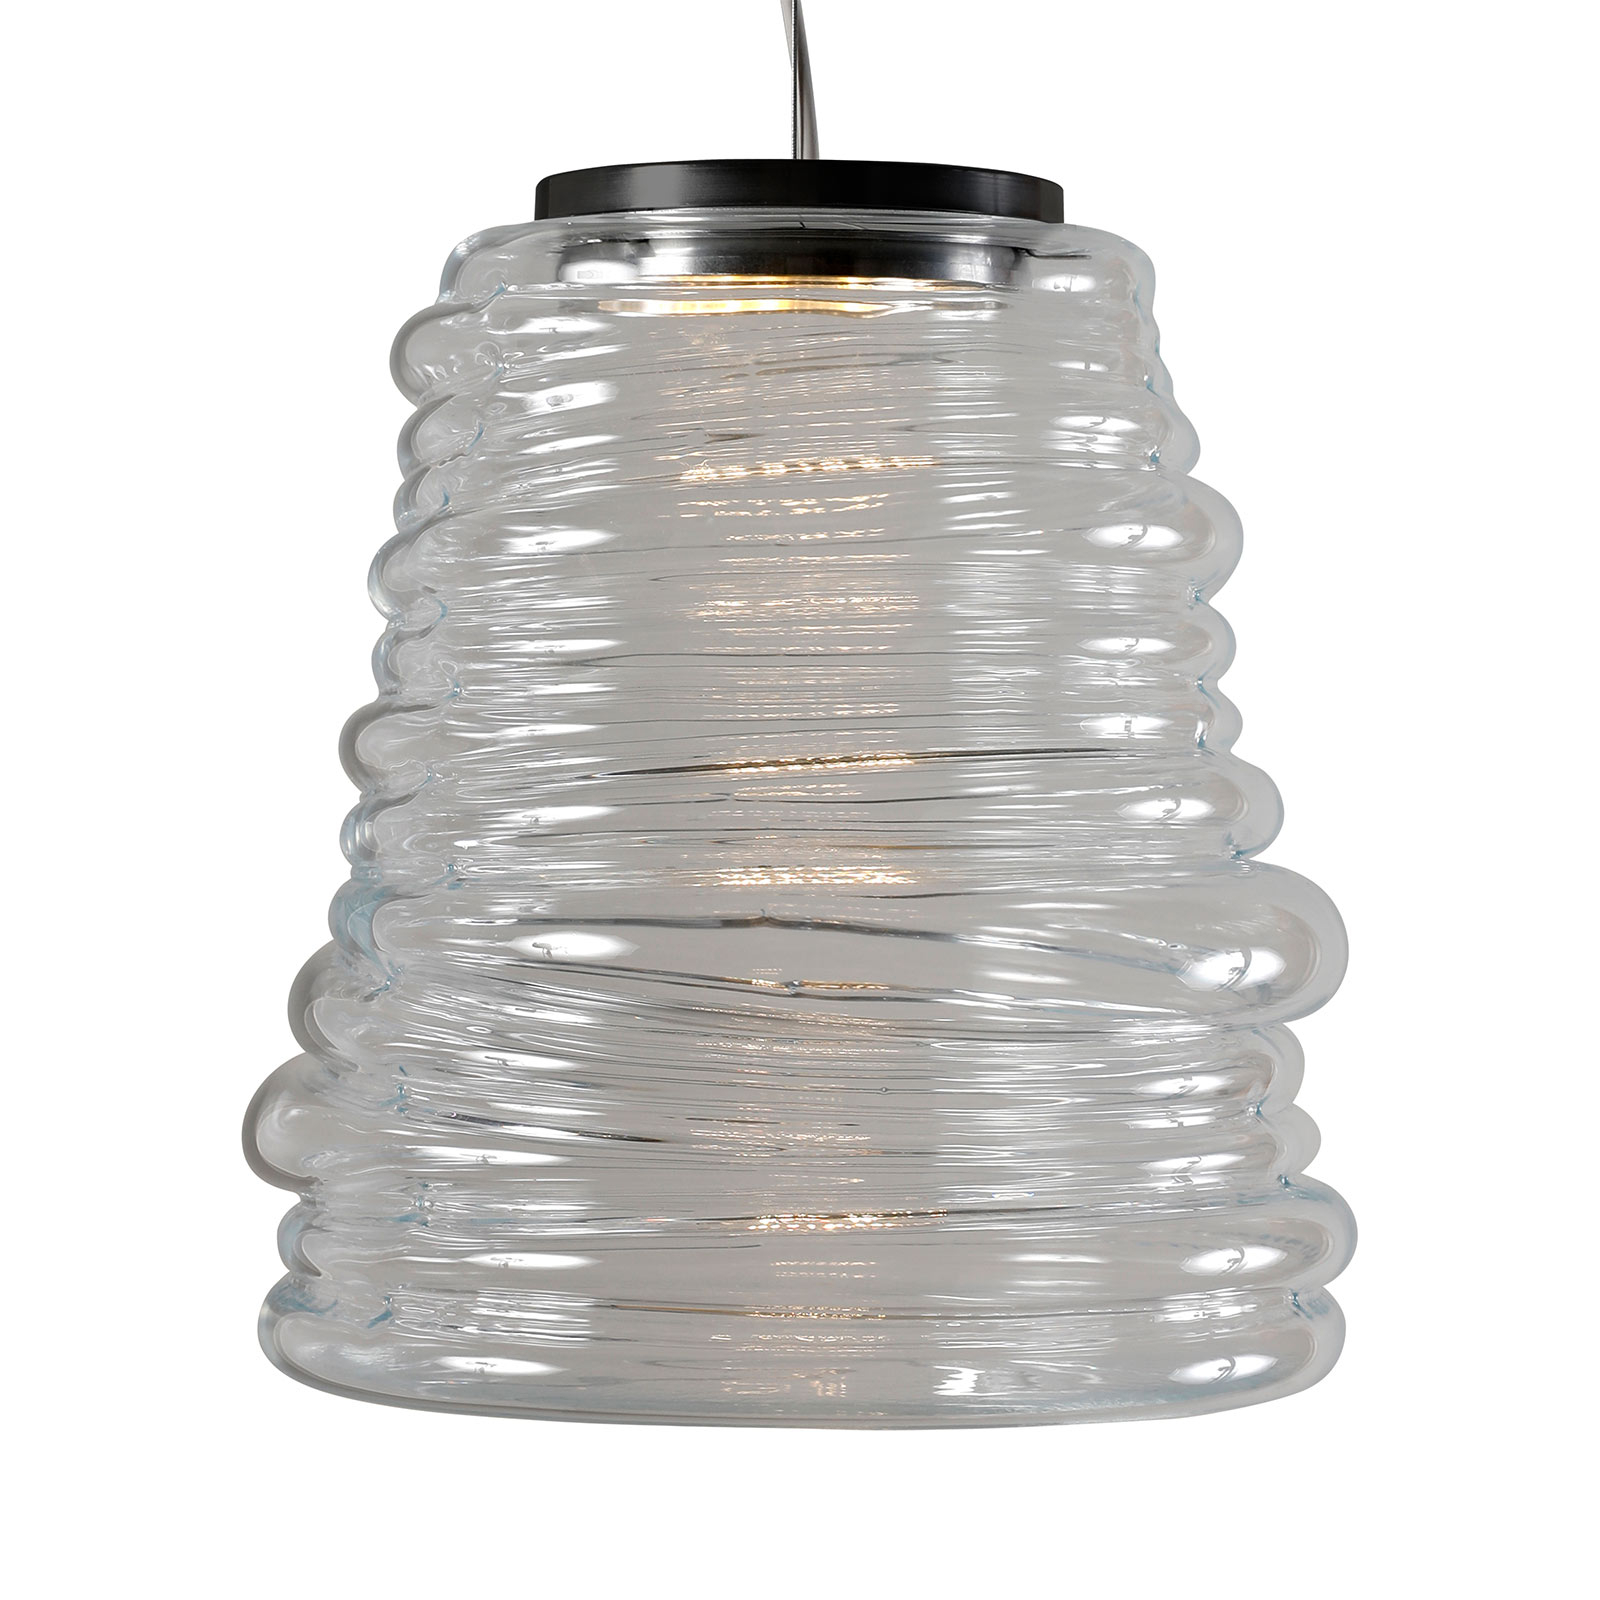 Karman Bibendum suspension LED Ø 30cm transparente